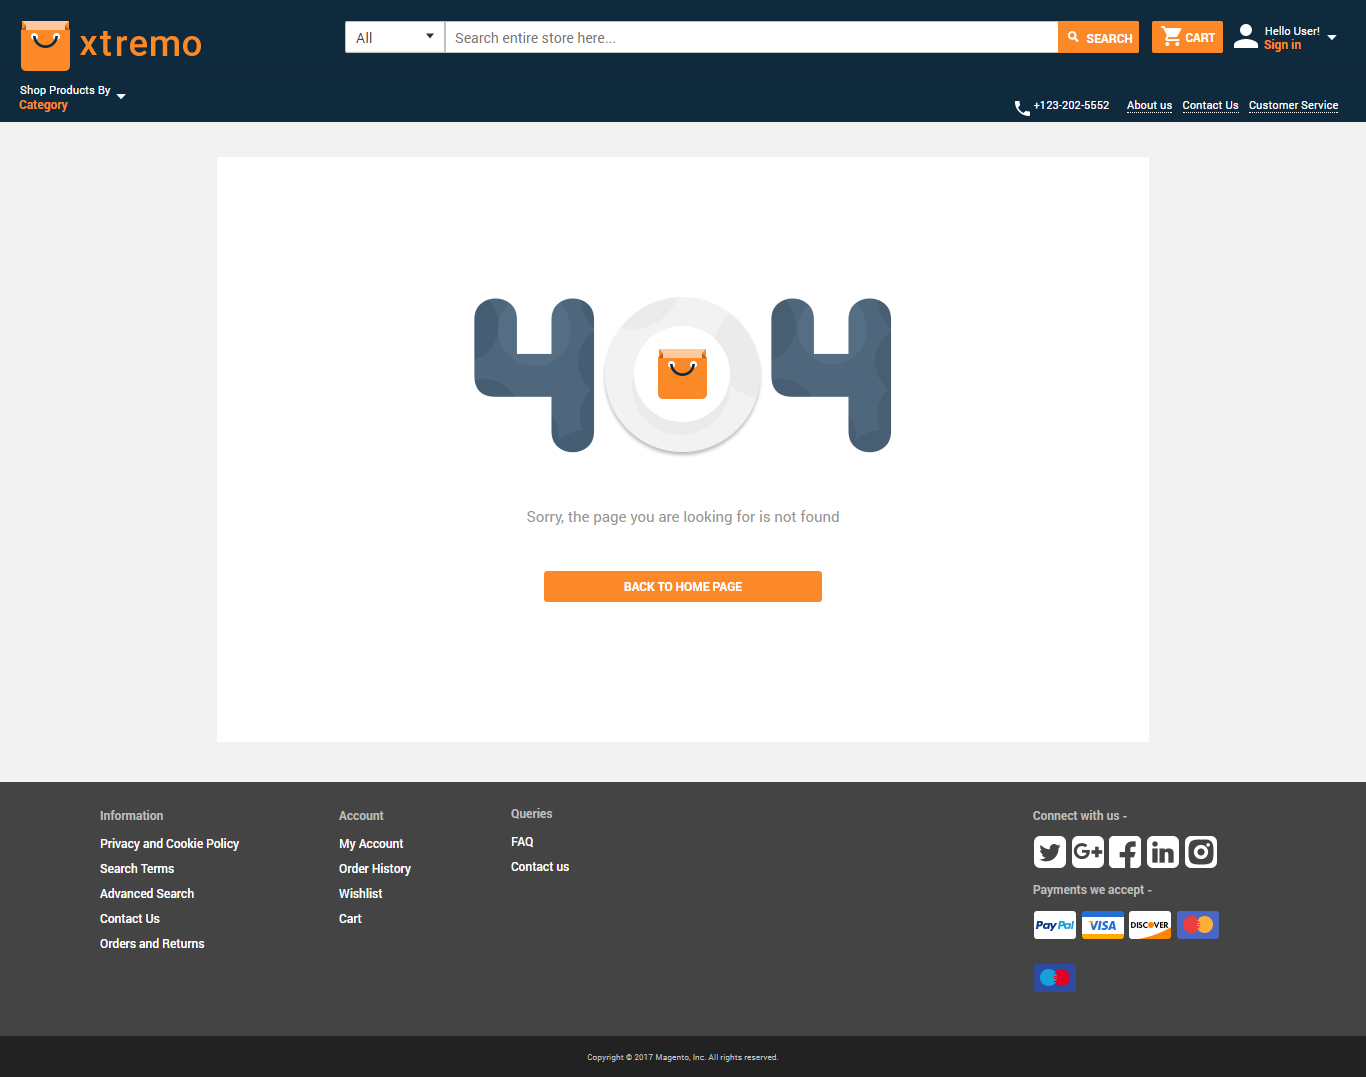 magento2-webkul-xtremo-template-404 error page view